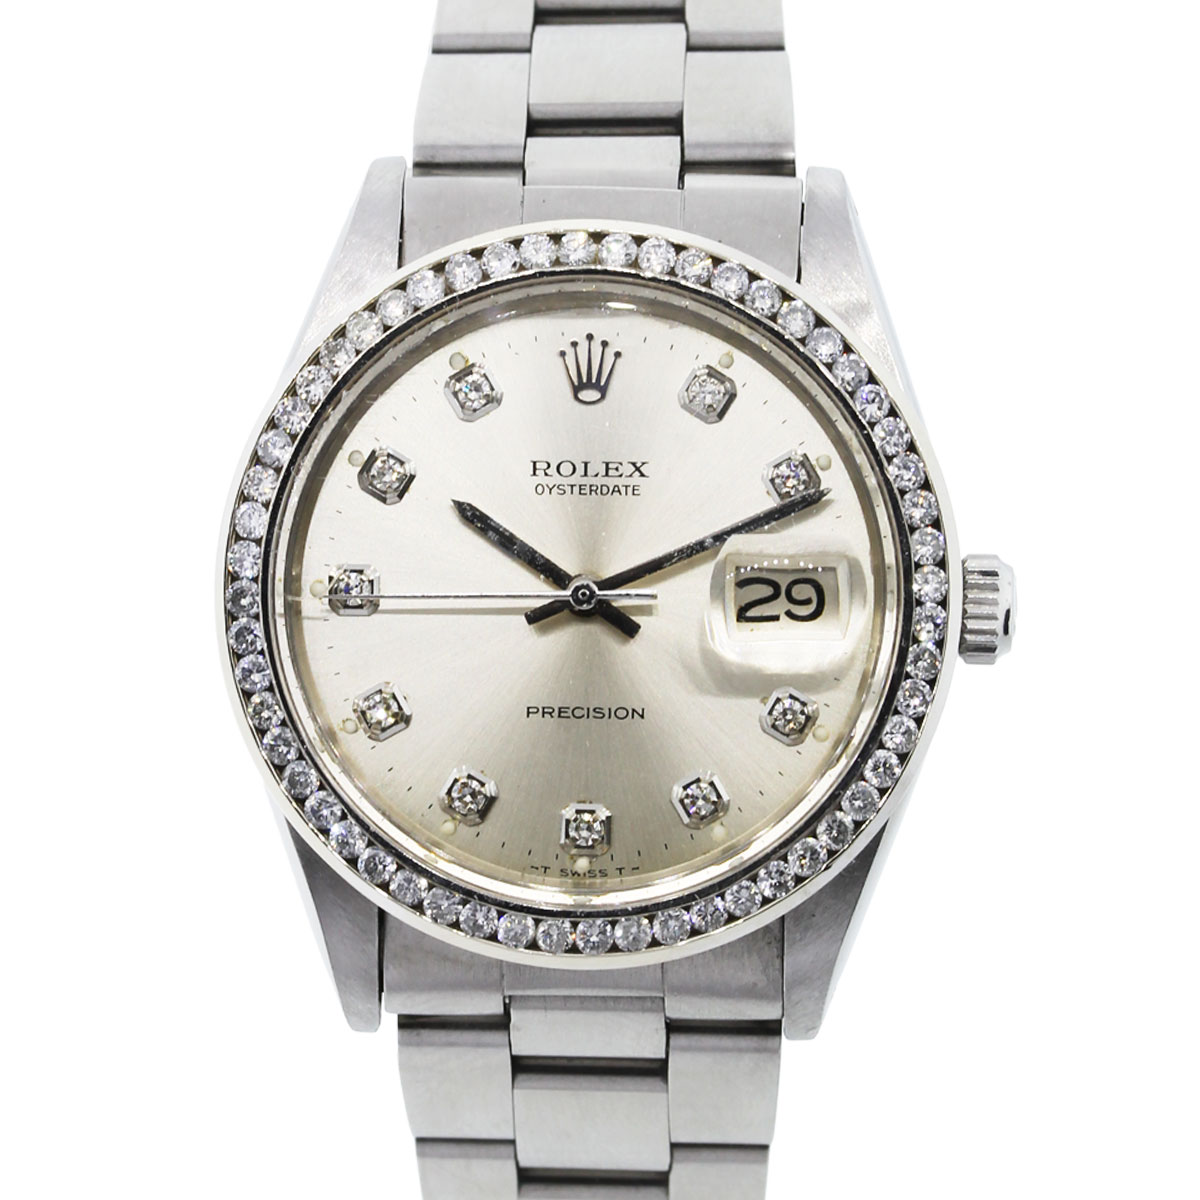 You are viewing this Rolex Oysterdate Precision Diamond Dial & Bezel Watch!